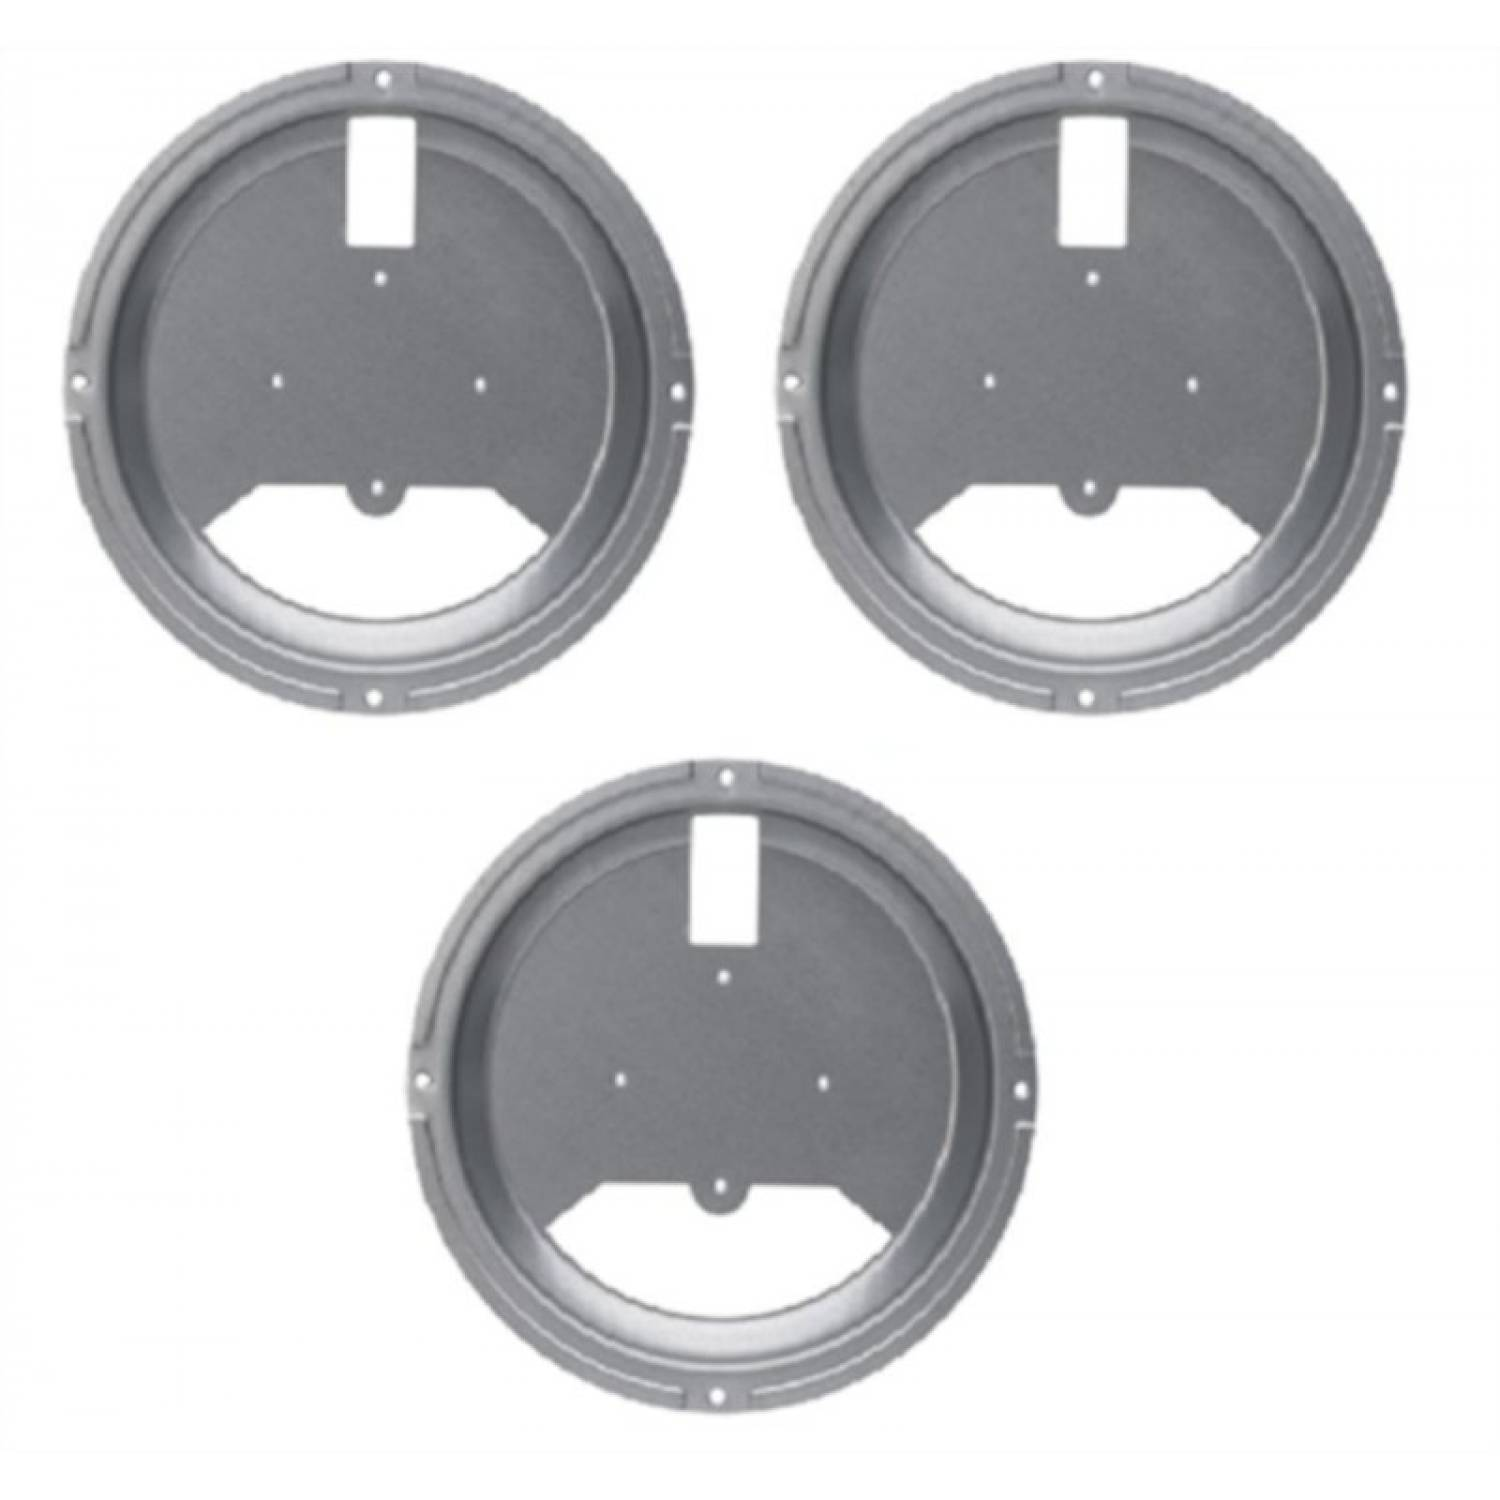 Ubiquiti Networks nanoHD Recessed Ceiling Mount 3-Pack WLAN access point mount